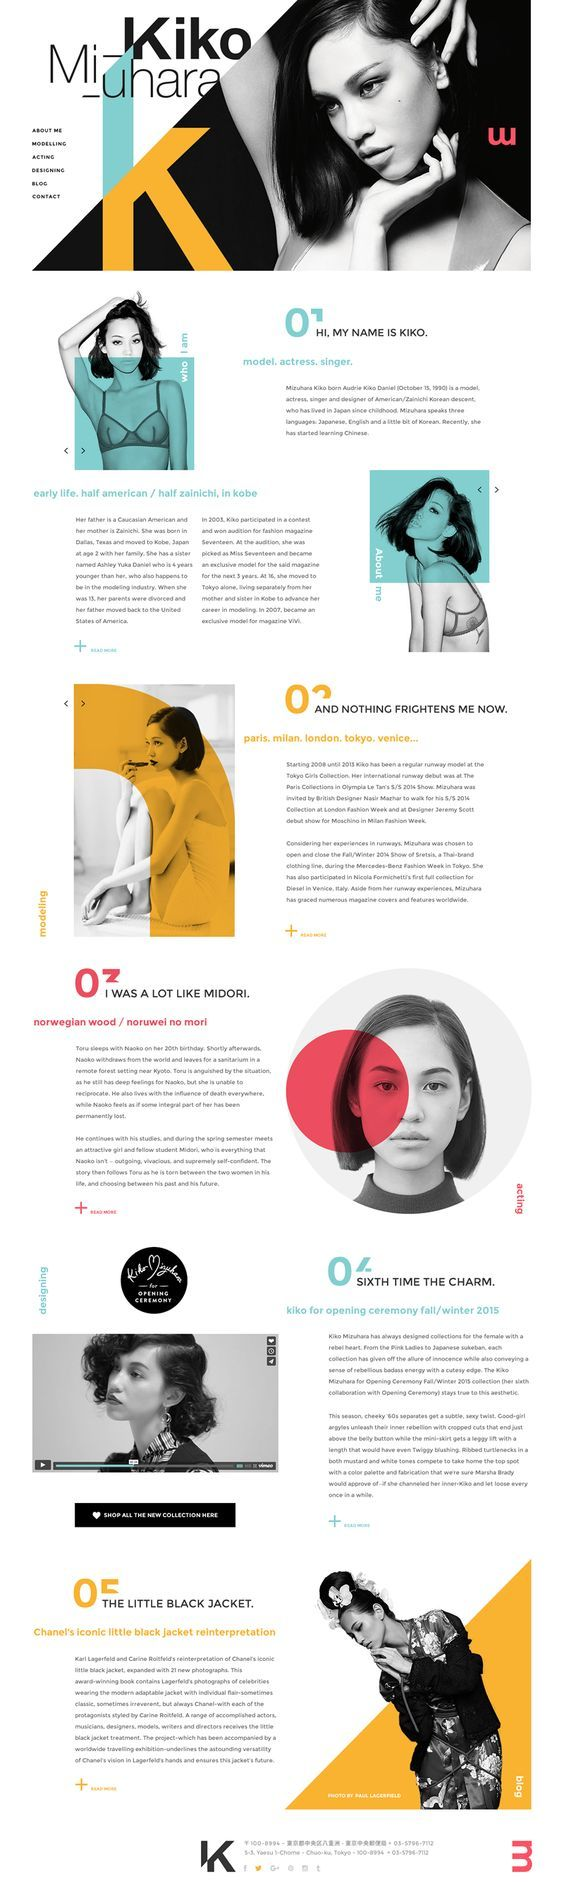 Poster design inspiration 2017 - Web Design Inspiration 2017